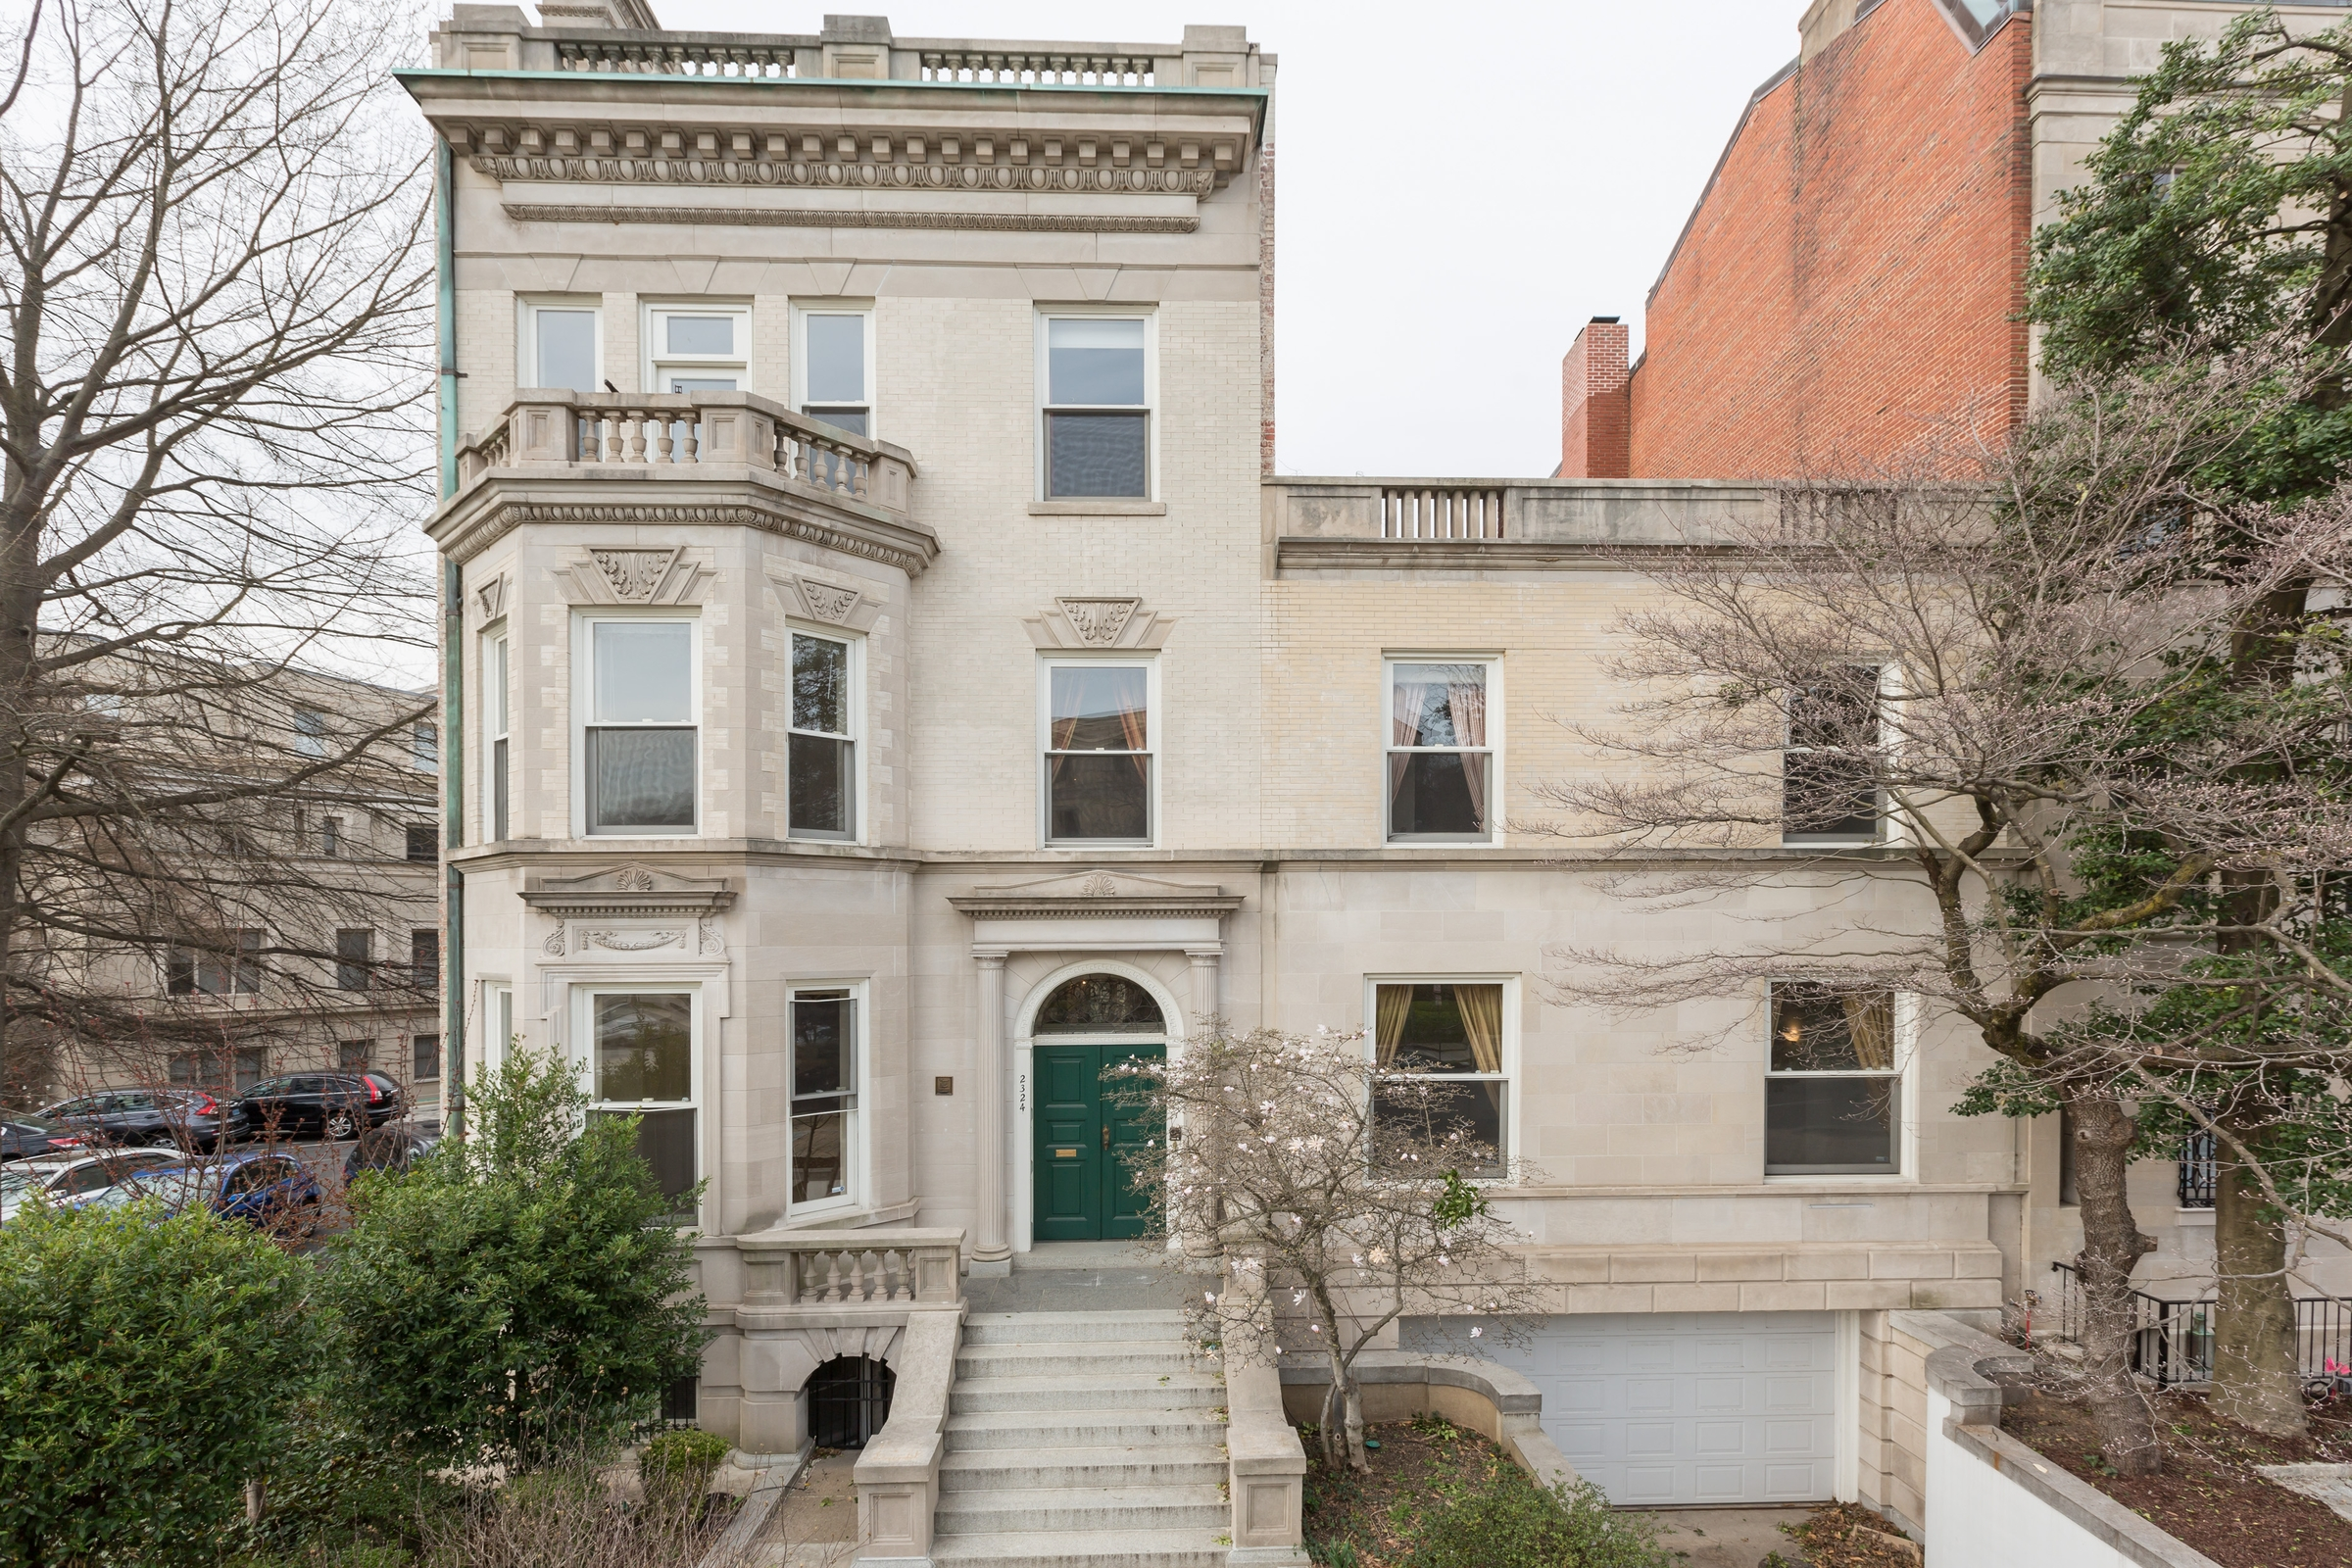 Single Family Home for Rent at Kalorama 2324 Massachusetts Avenue Nw Washington, District Of Columbia 20008 United States